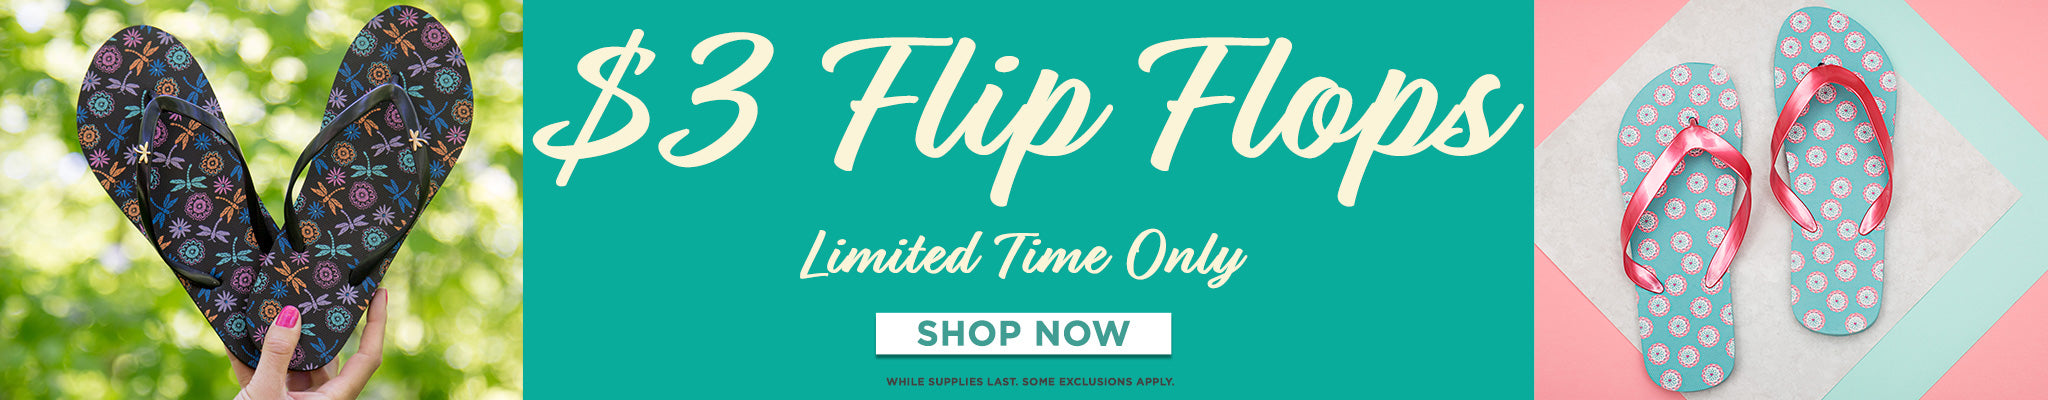 Don't Miss Out! $3 Flip Flops | Limited Time